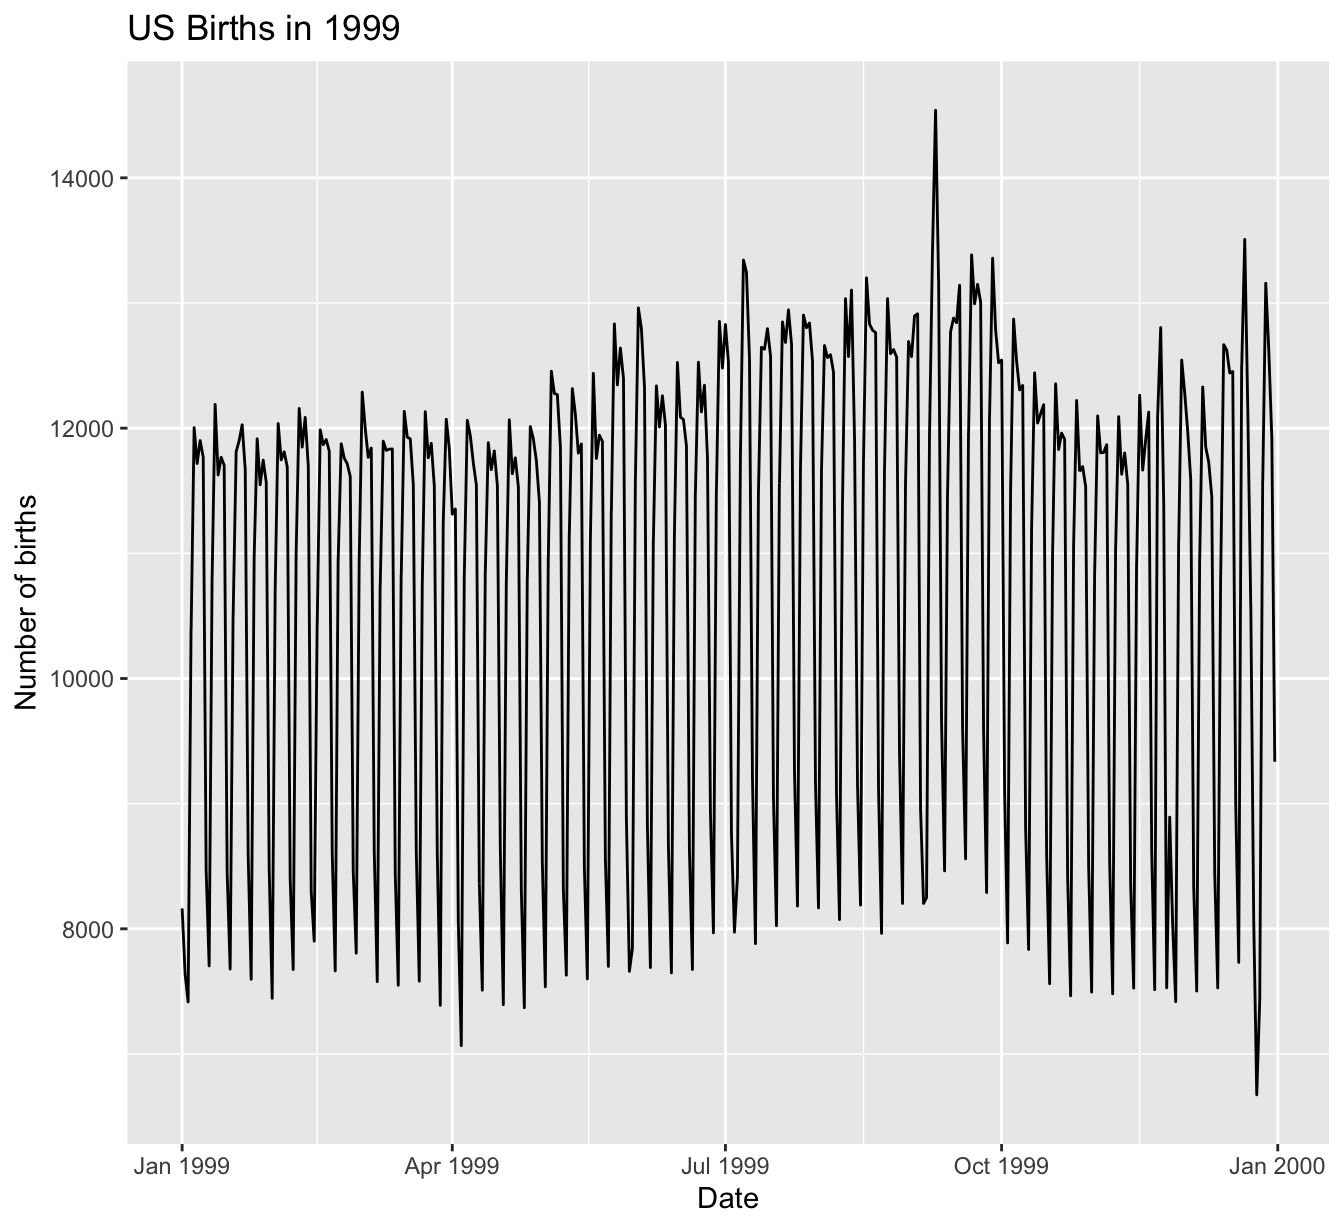 Number of births in US in 1999.